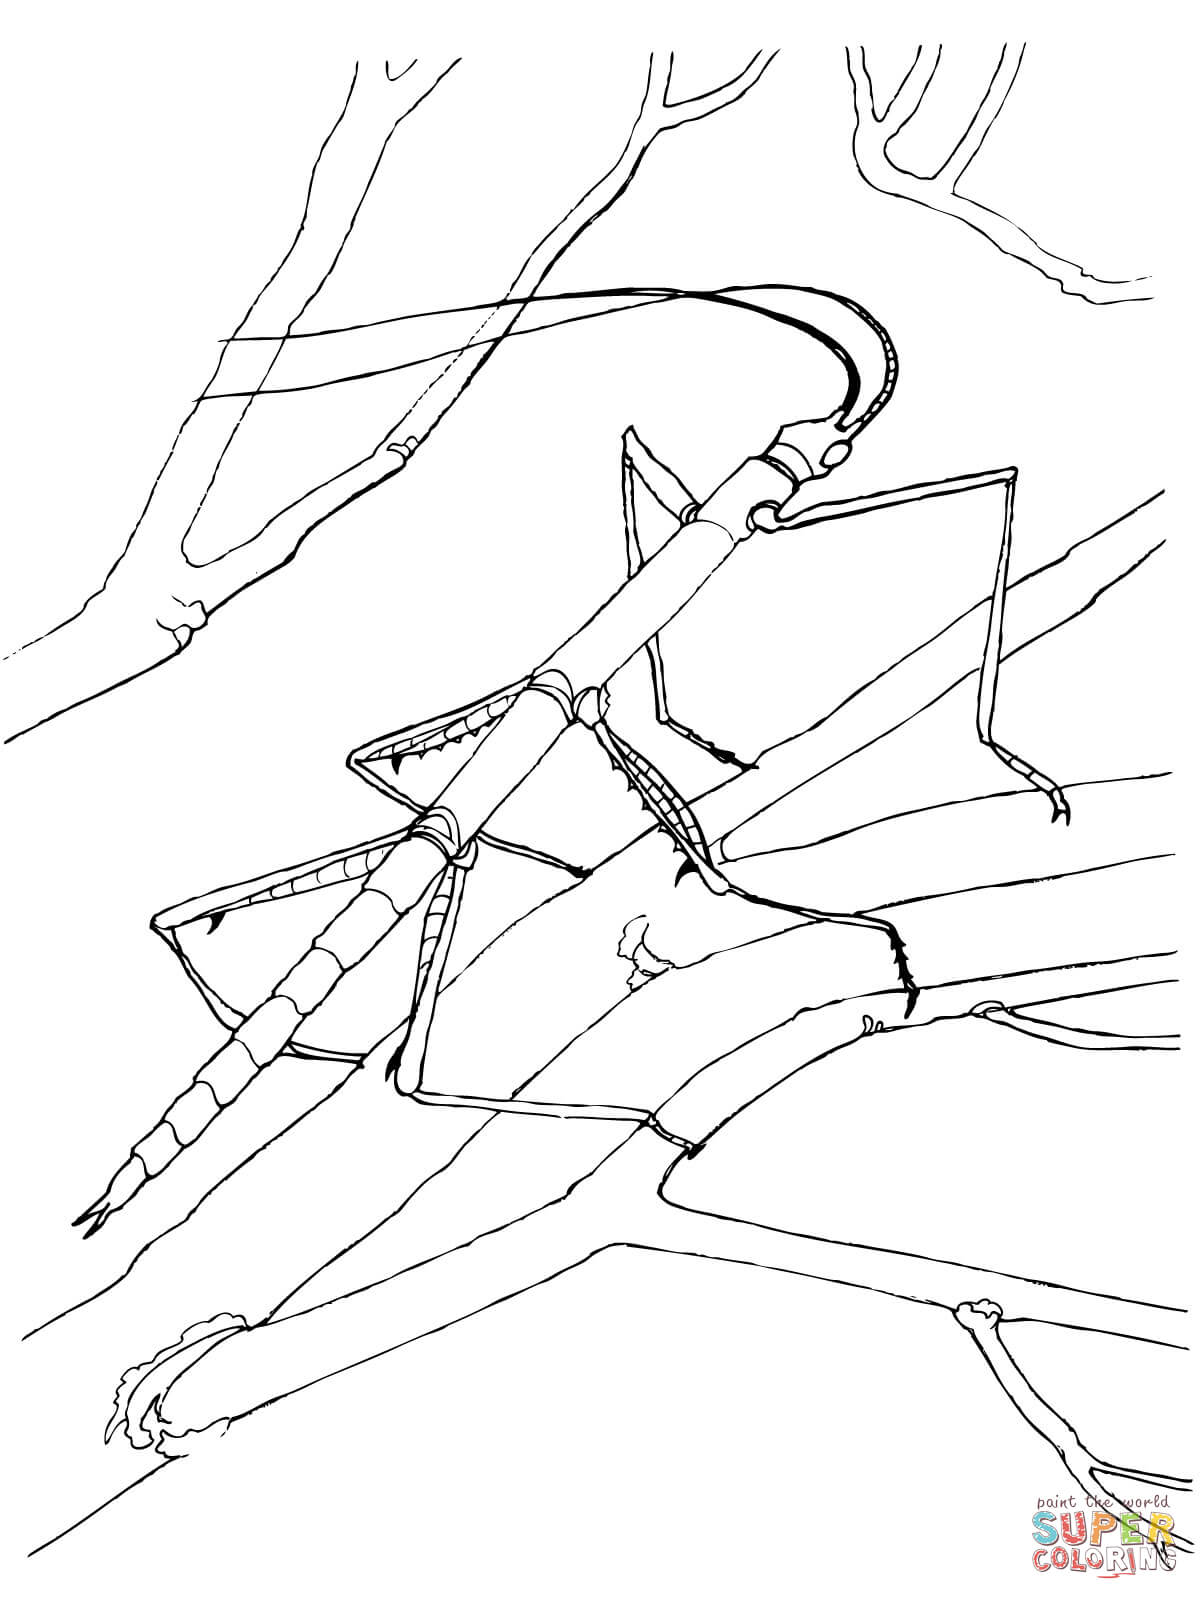 Walking Stick Bug Coloring Page